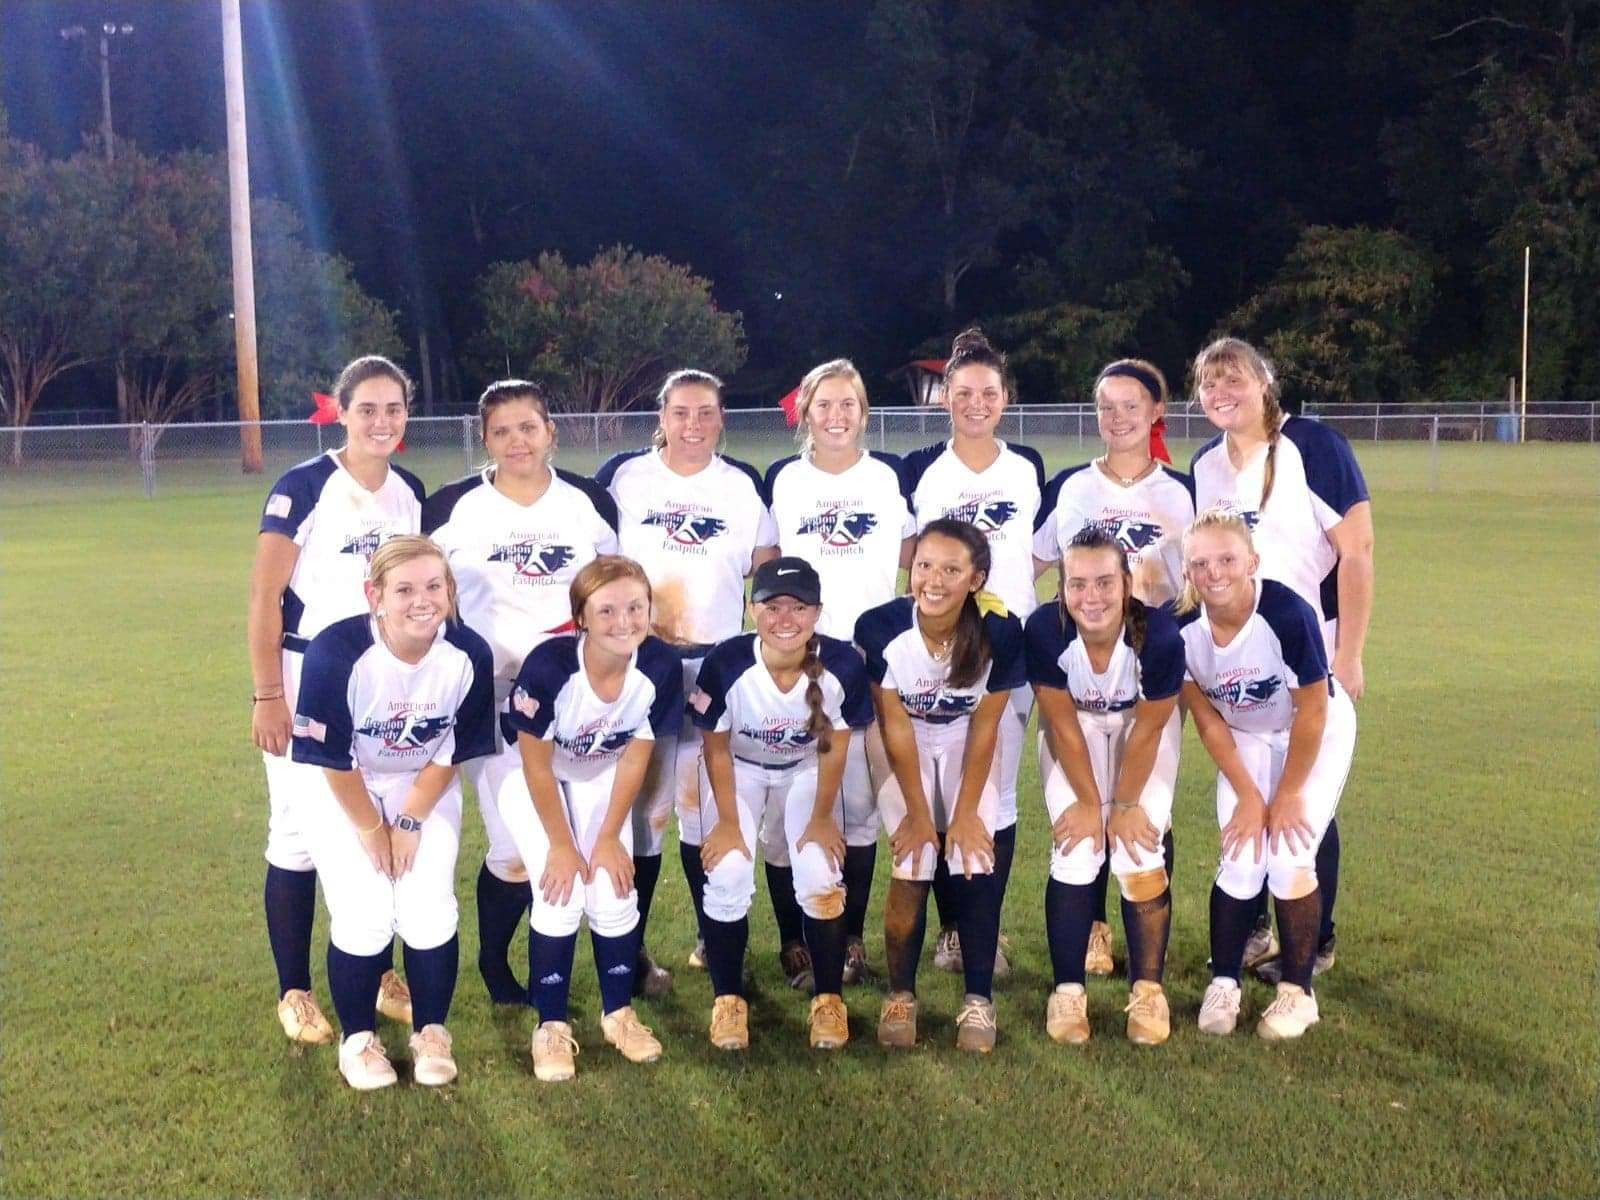 Kinston Post 43's softball team improved to 7-1 this season after a pair of victories against Wilmington Post 545 Tuesday. Submitted photo